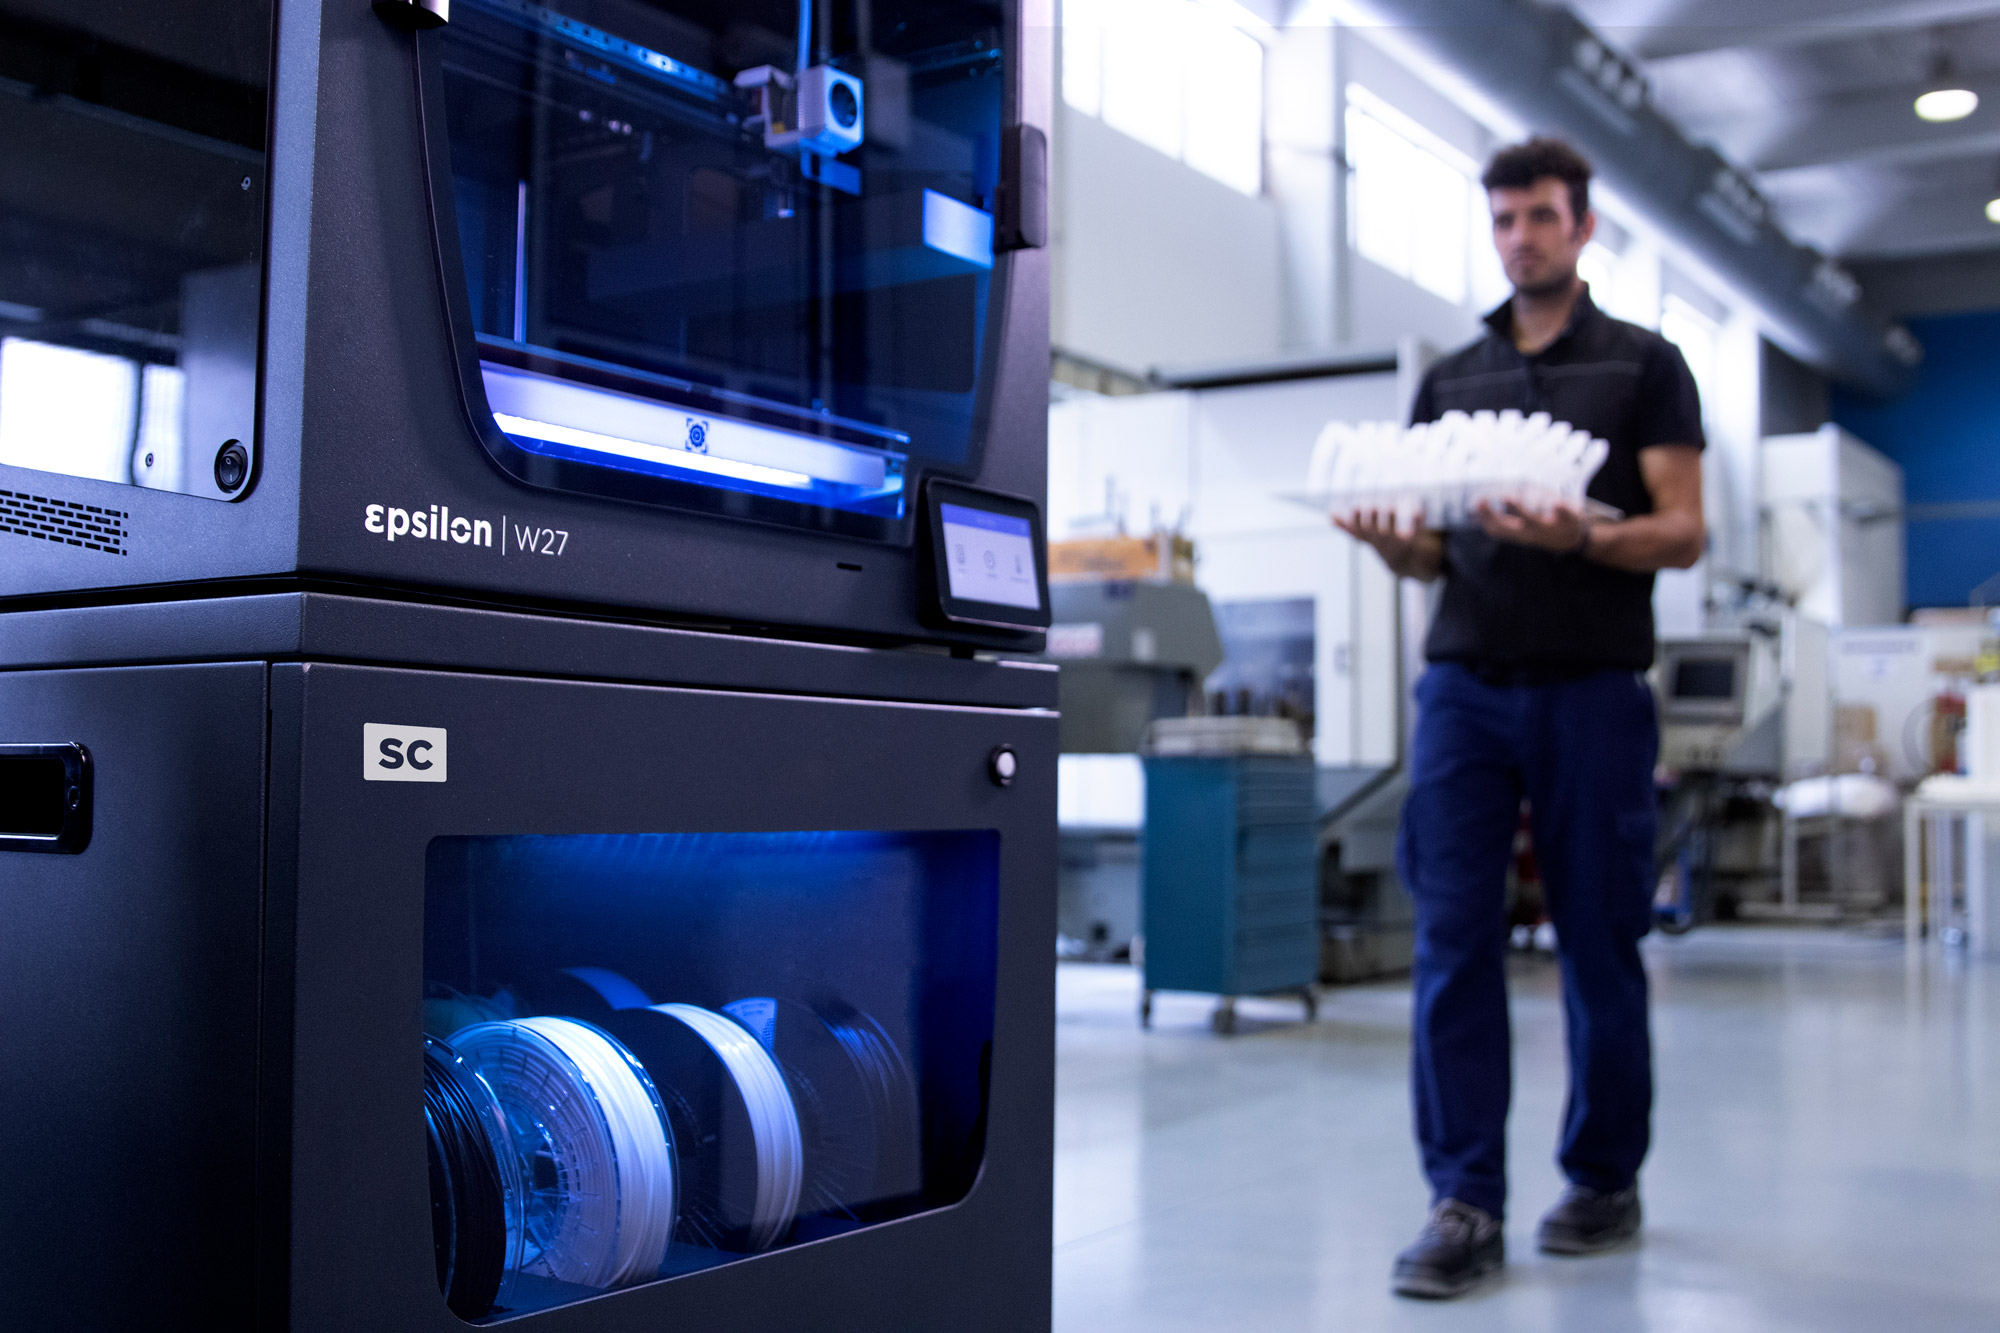 BCN3D has released a Smart Cabinet to go alongside its new W27 3D printer, which is designed to optimize its performance. Photo via BCN3D.